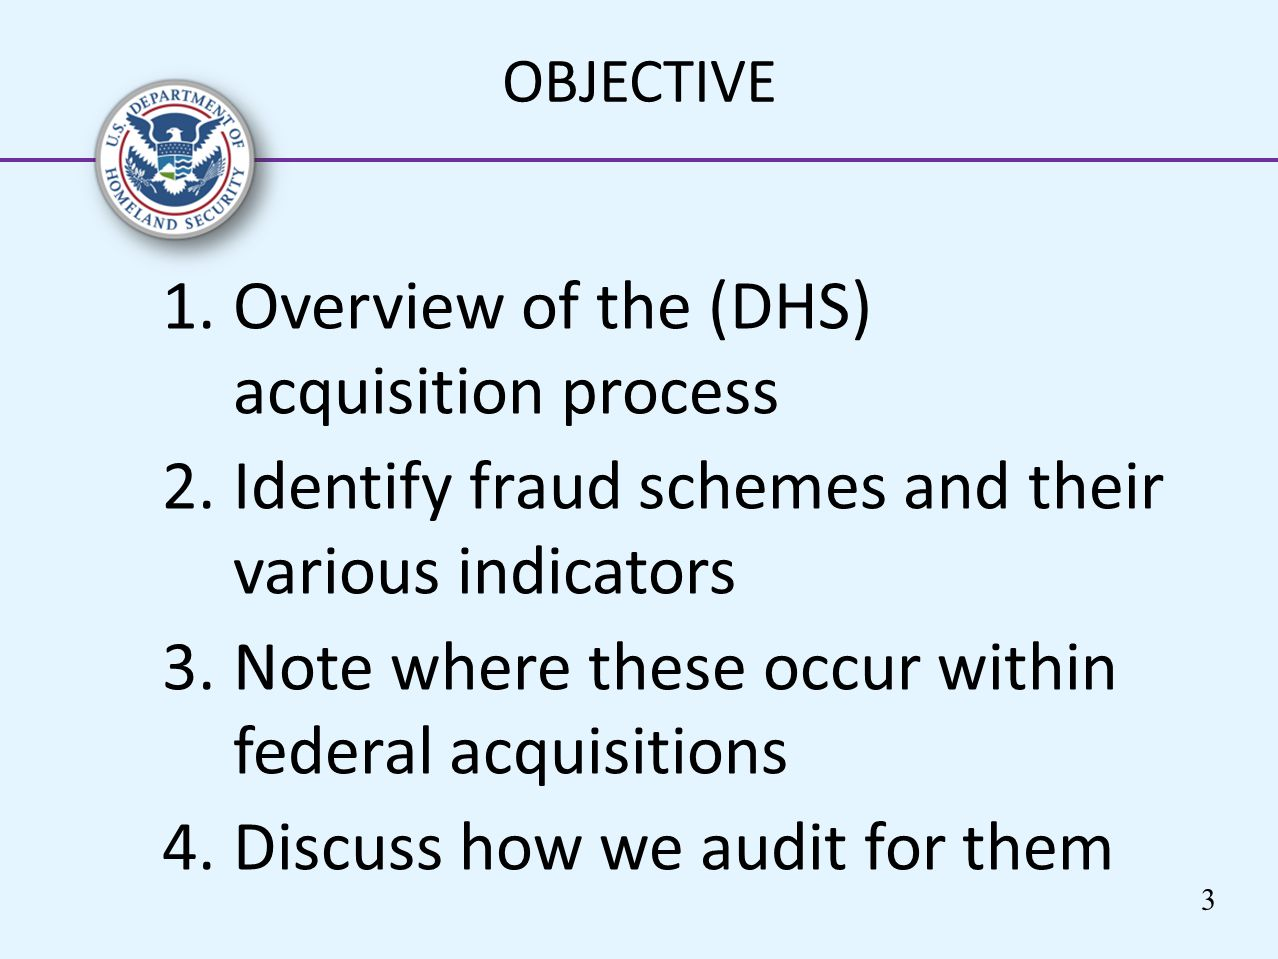 1.Overview of the (DHS) acquisition process 2.Identify fraud schemes and their various indicators 3.Note where these occur within federal acquisitions